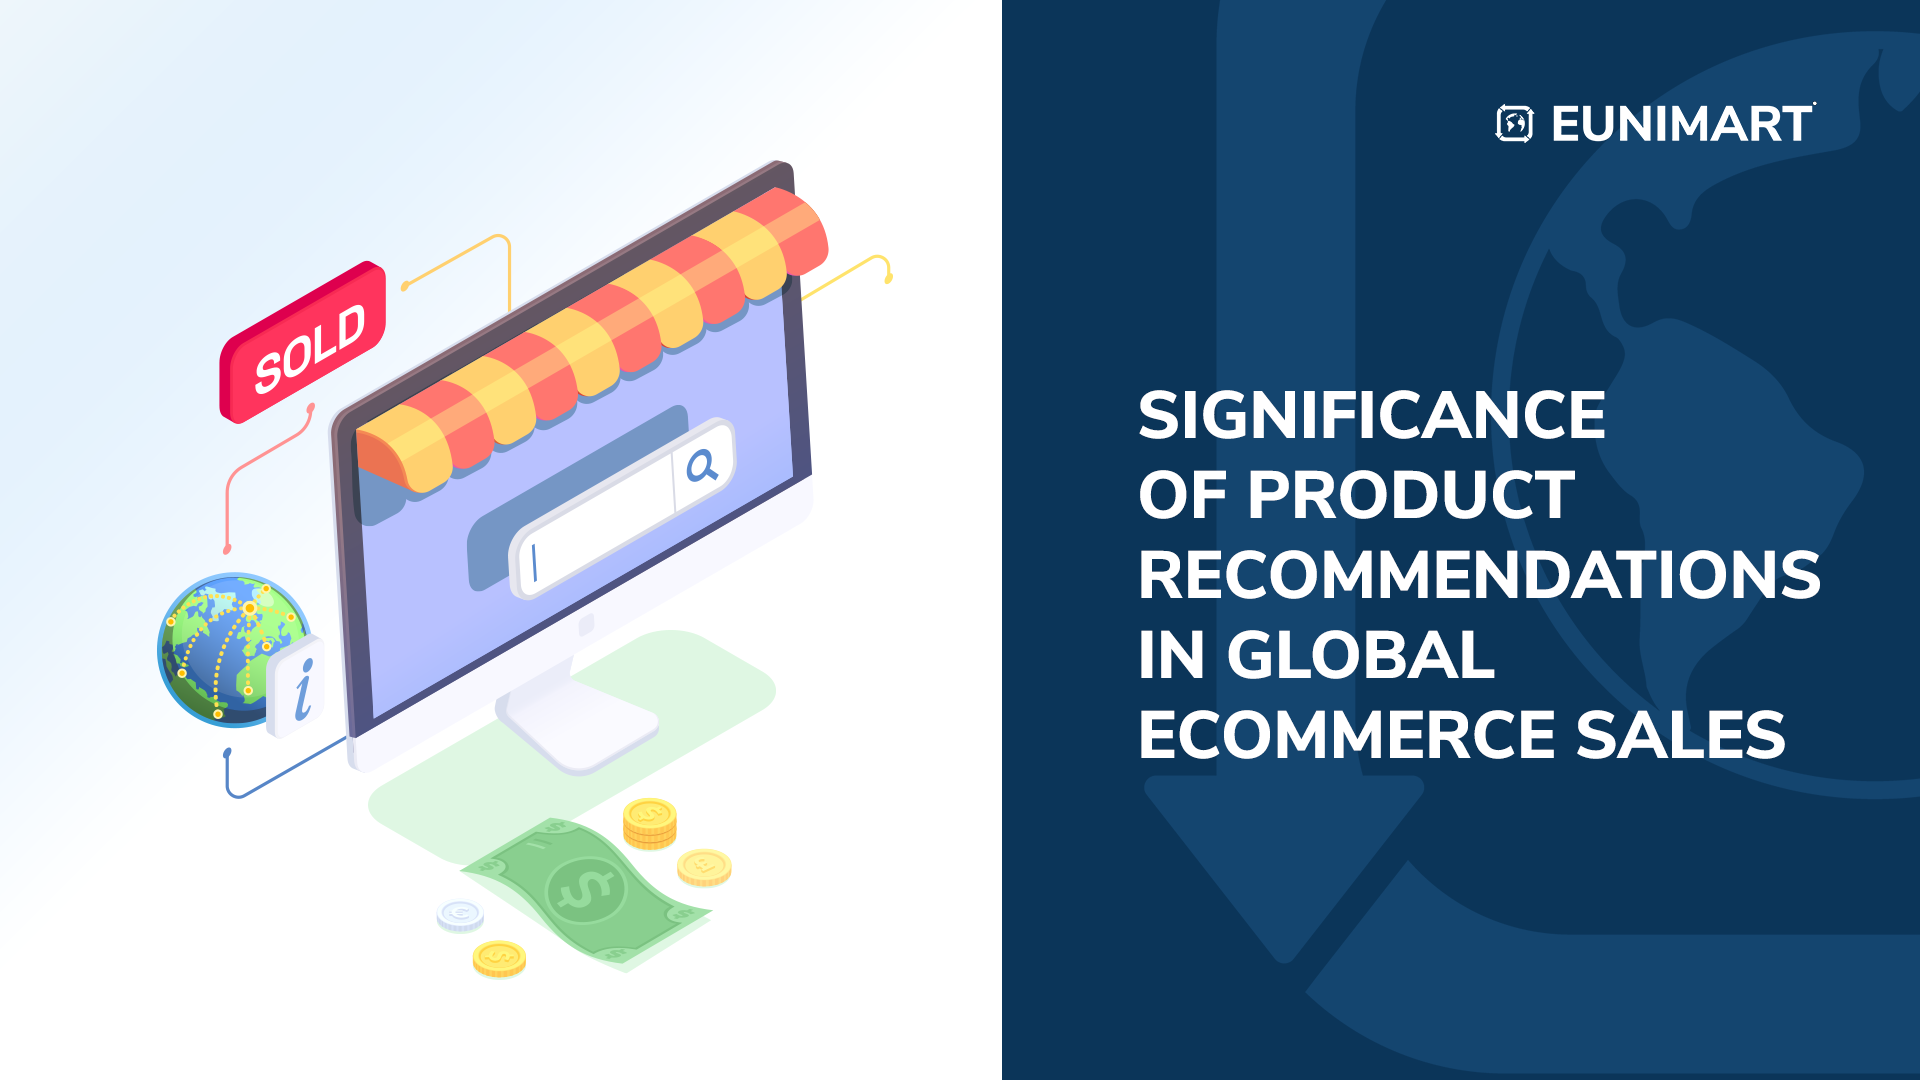 Significance of Product Recommendations in Global Ecommerce Sales